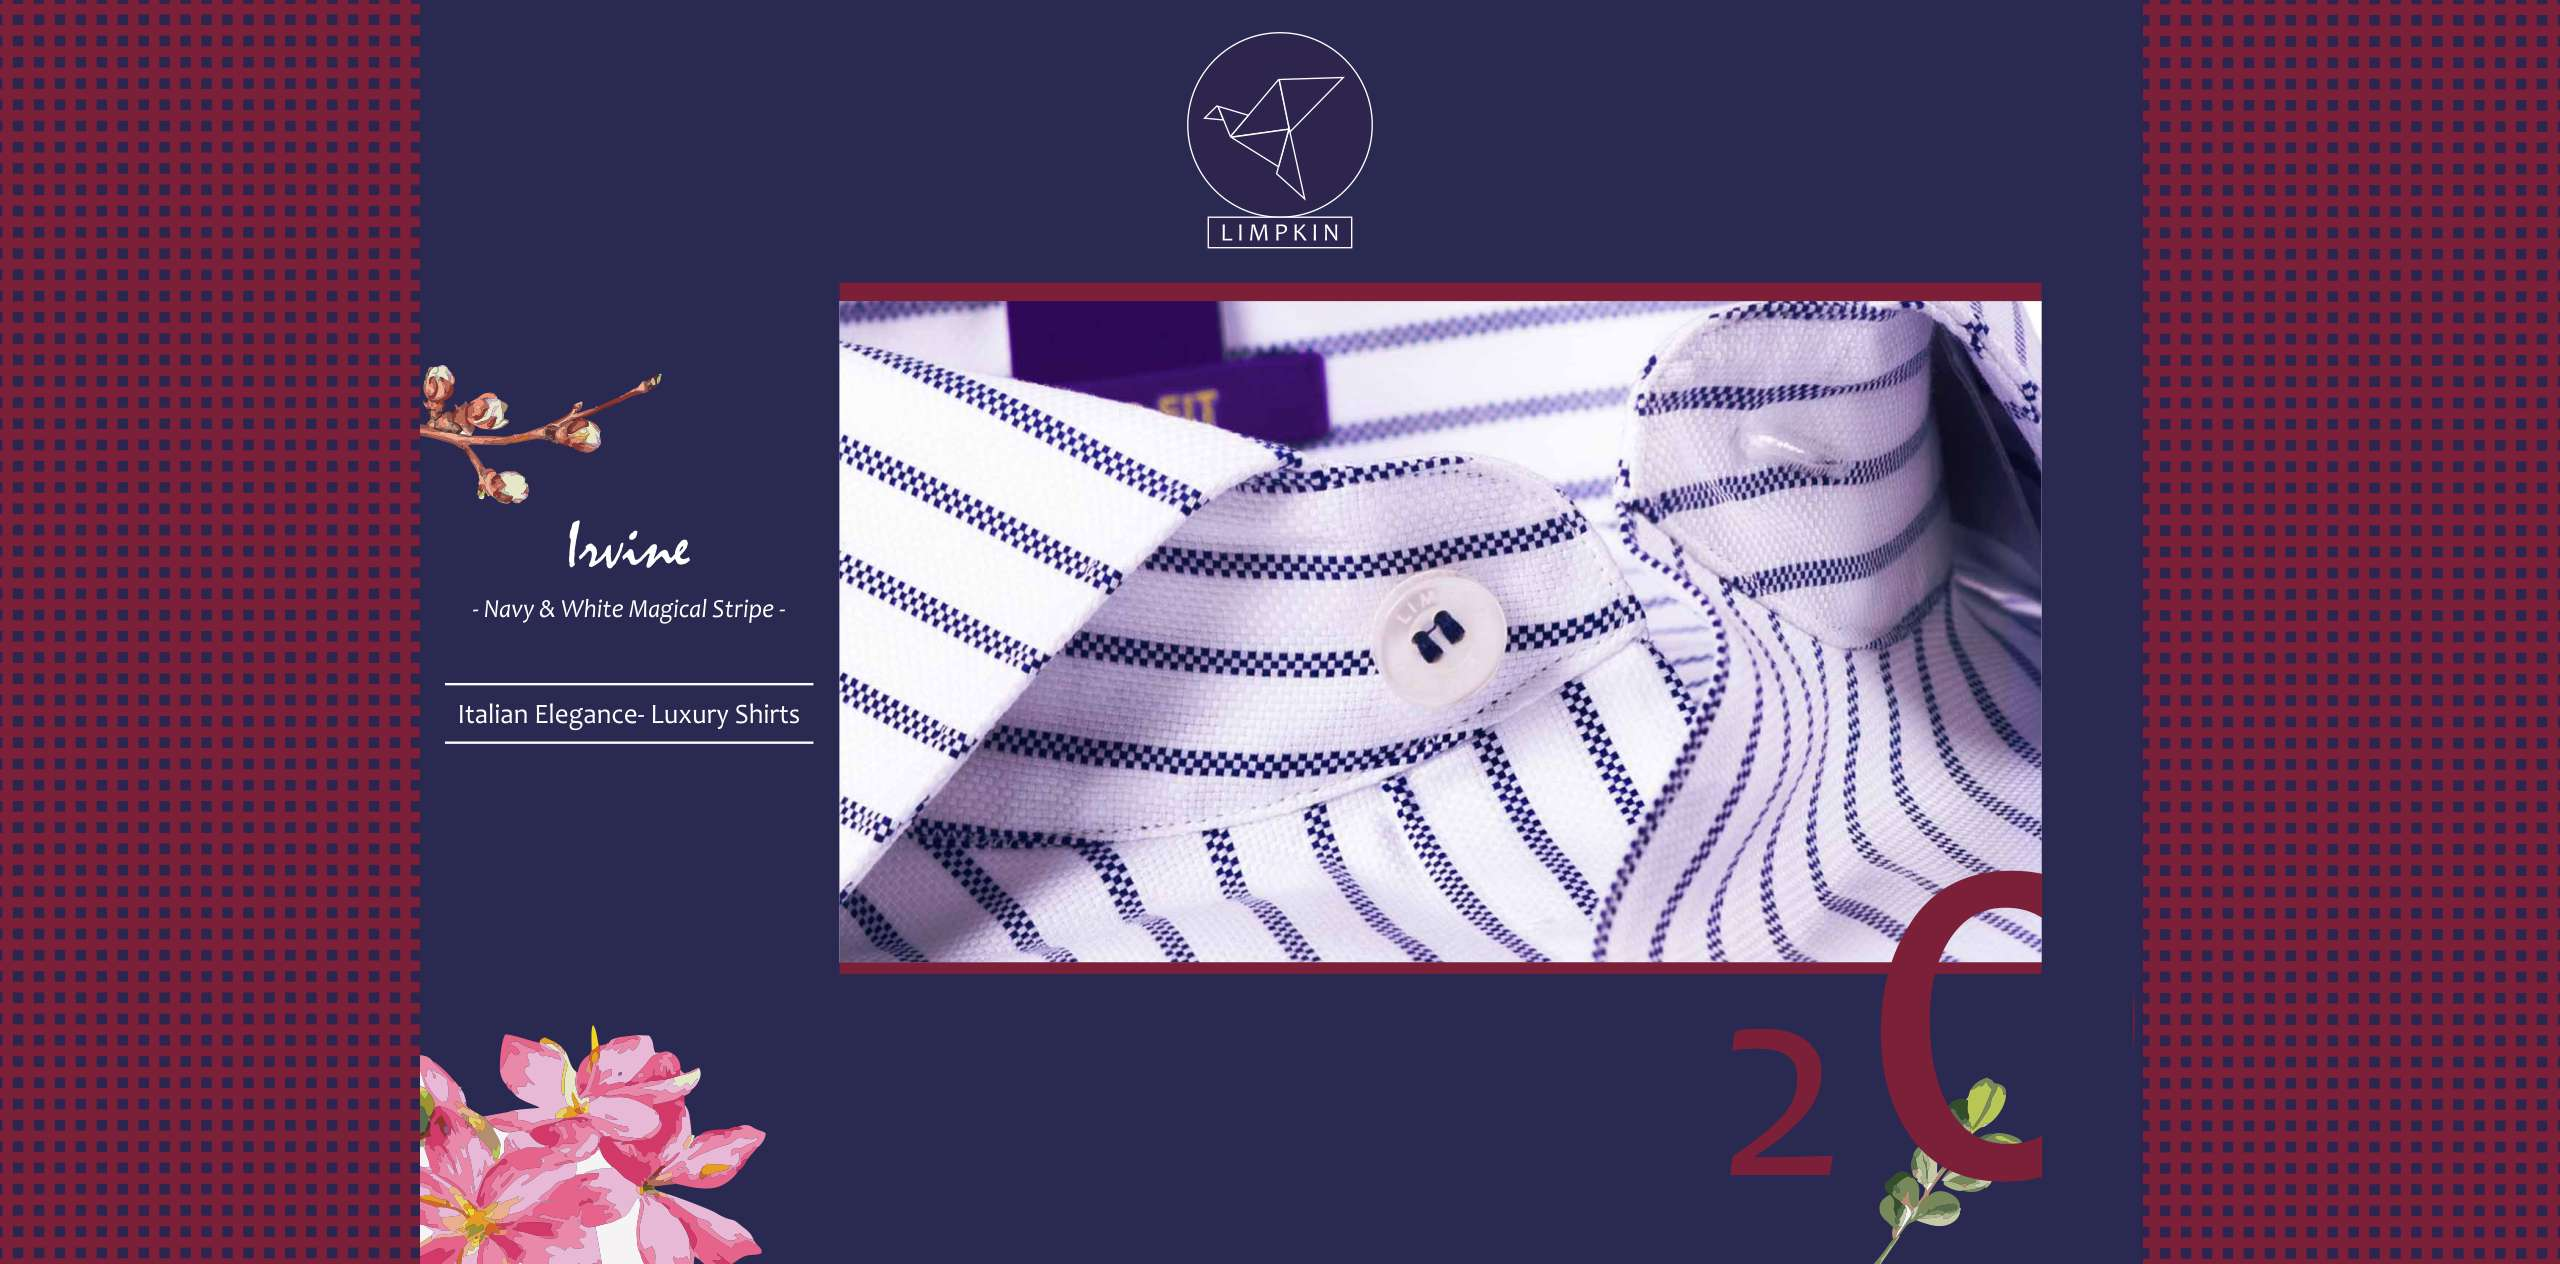 Irvine- Navy & White Magical Stripe- 2/120 Egyptian Giza Cotton- Delivery from 3rd July - Banner